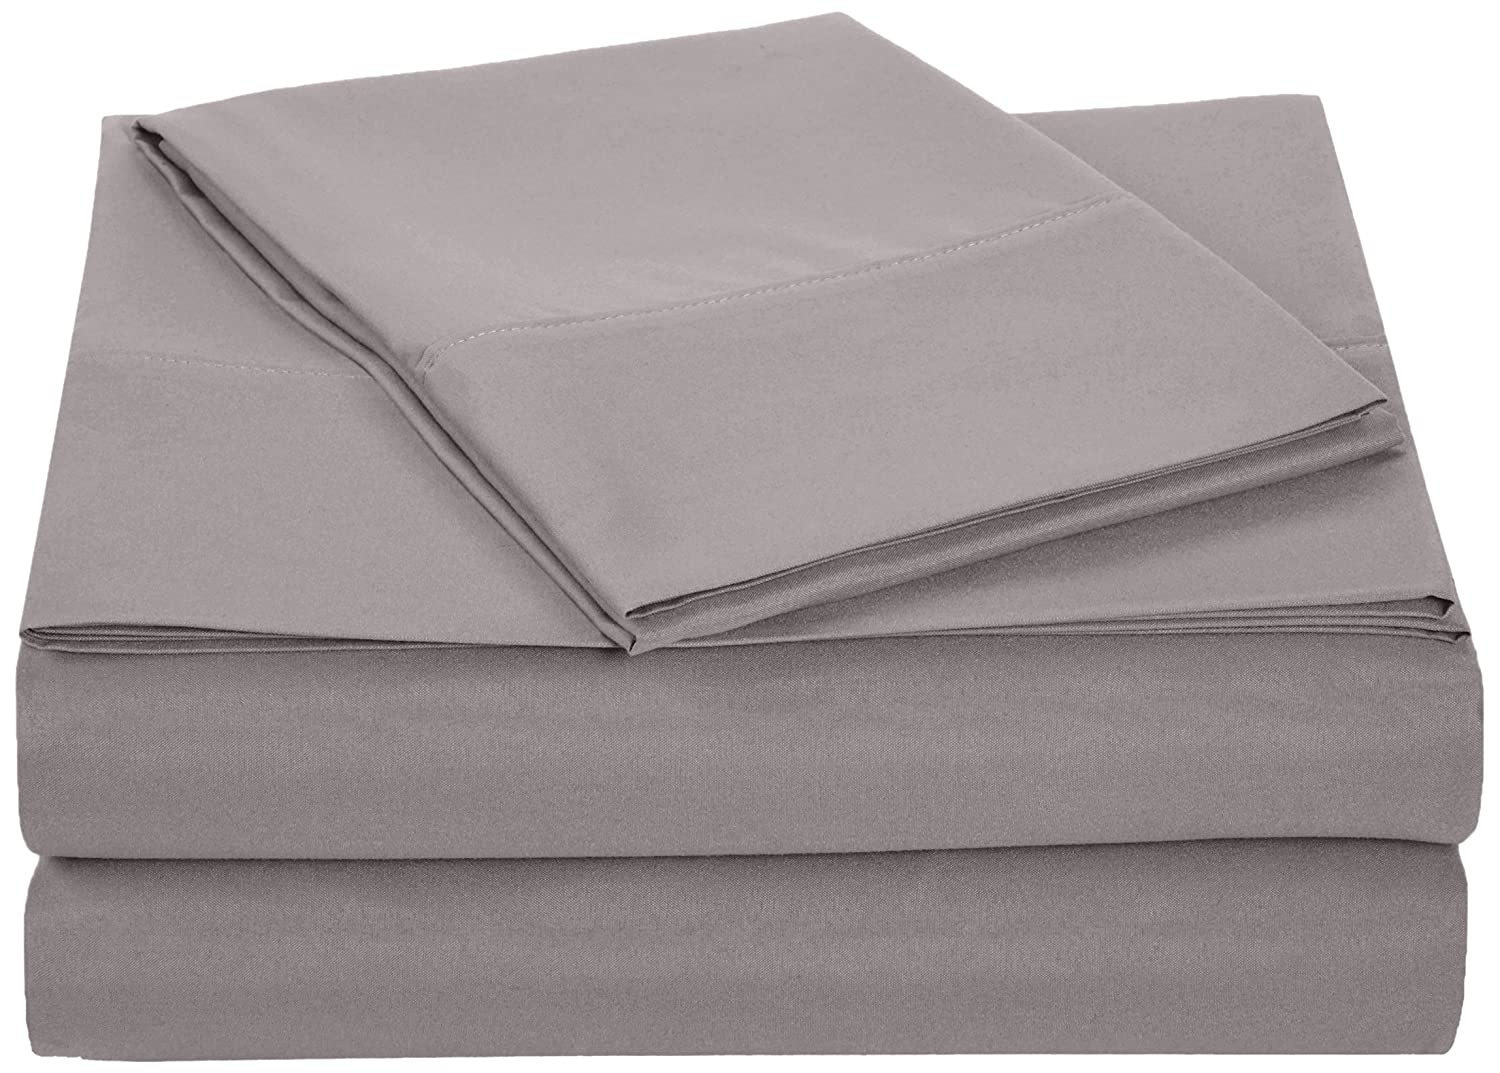 AmazonBasics Microfiber Sheet Set - Twin, Dark Grey